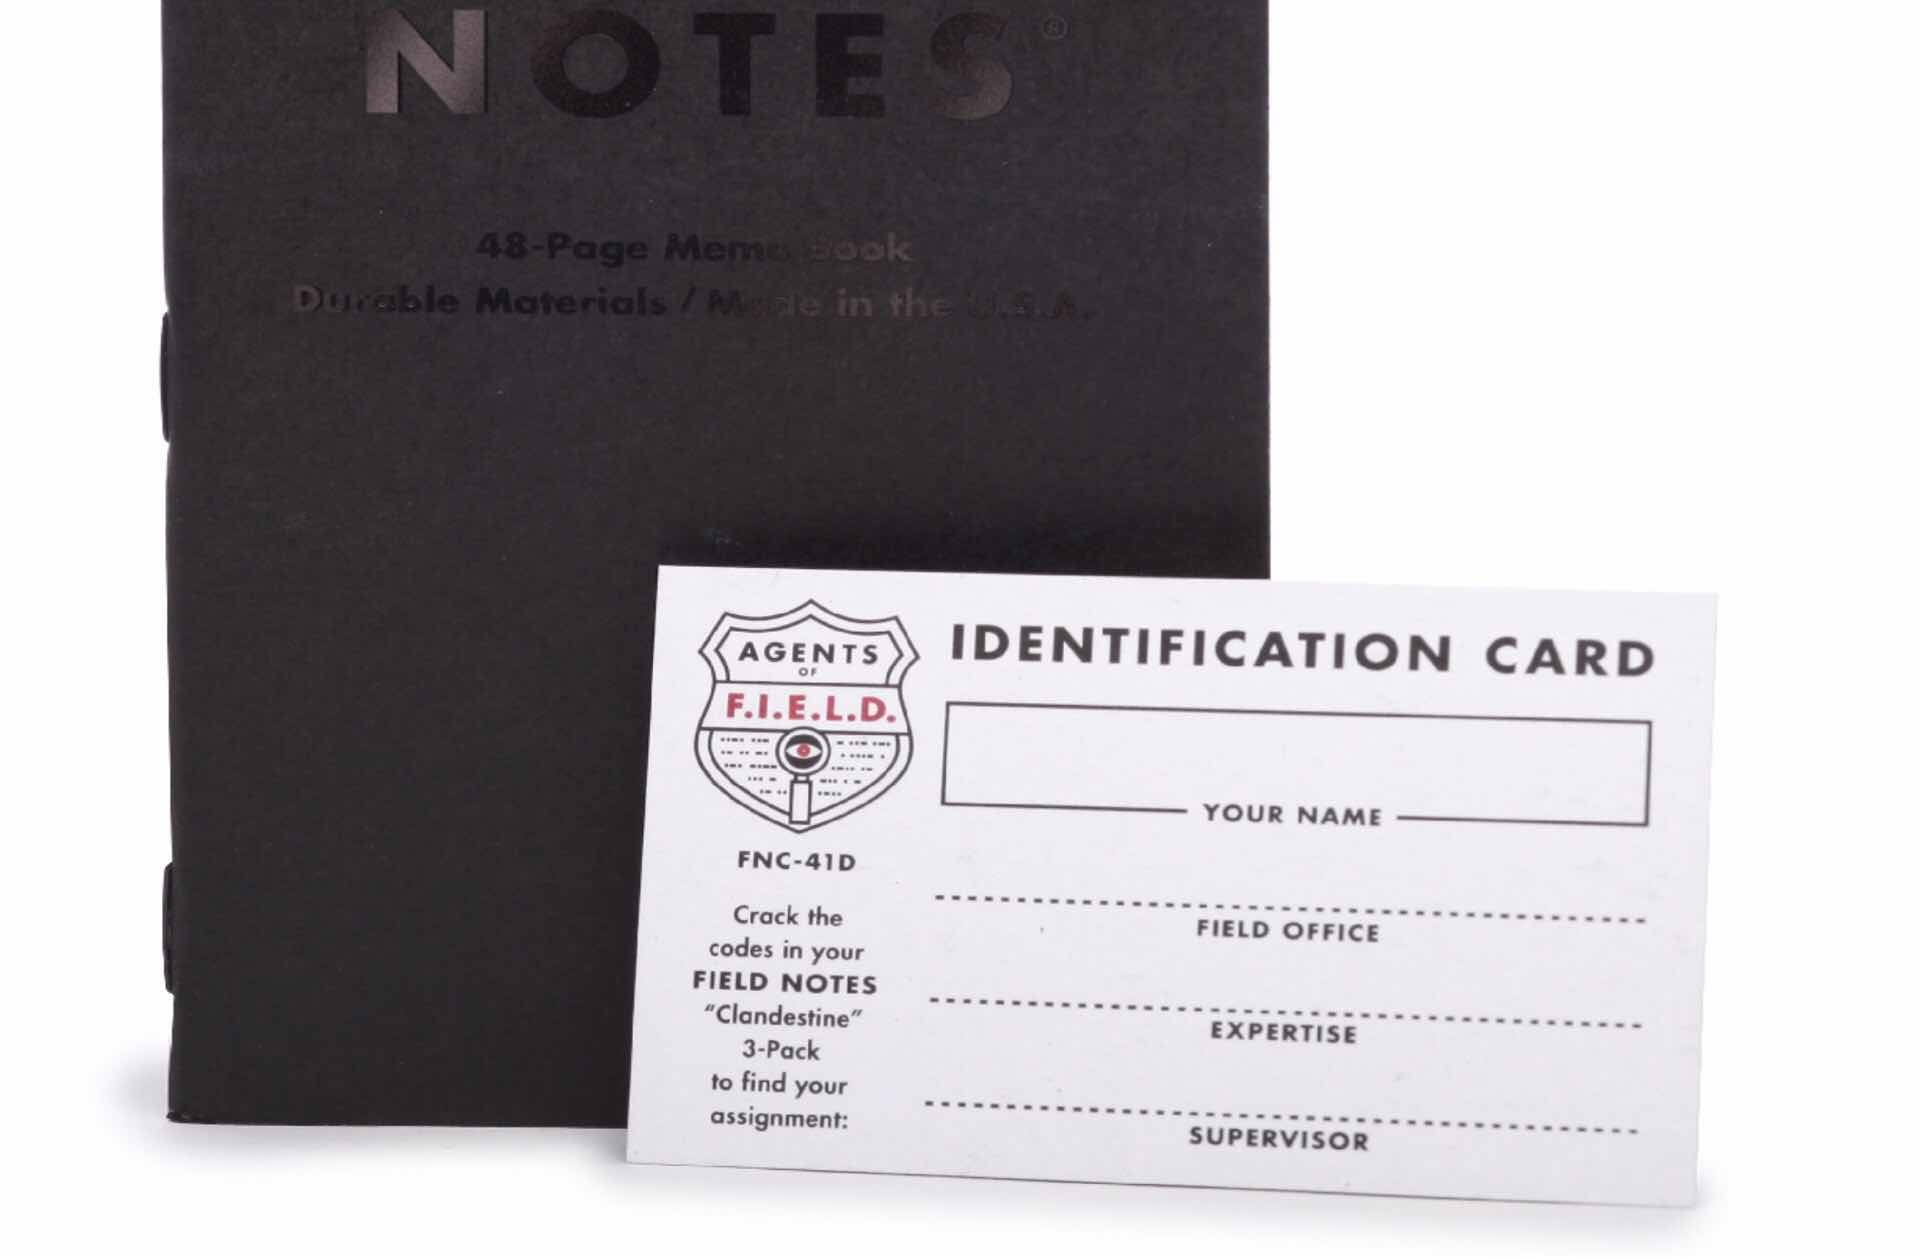 field-notes-clandestine-edition-agent-card